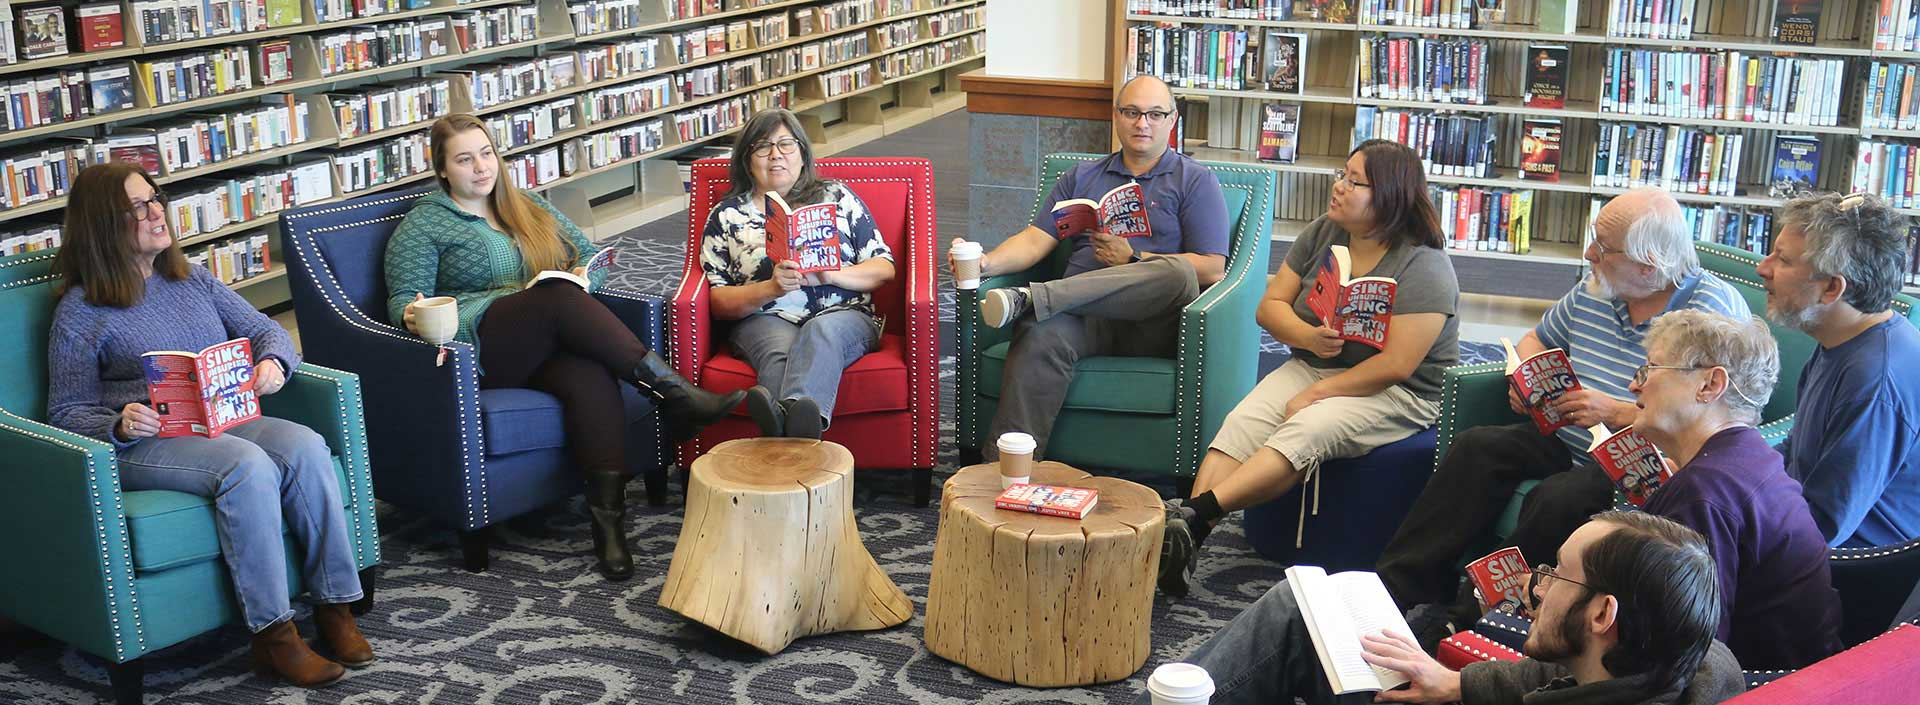 Library Book Group Meeting